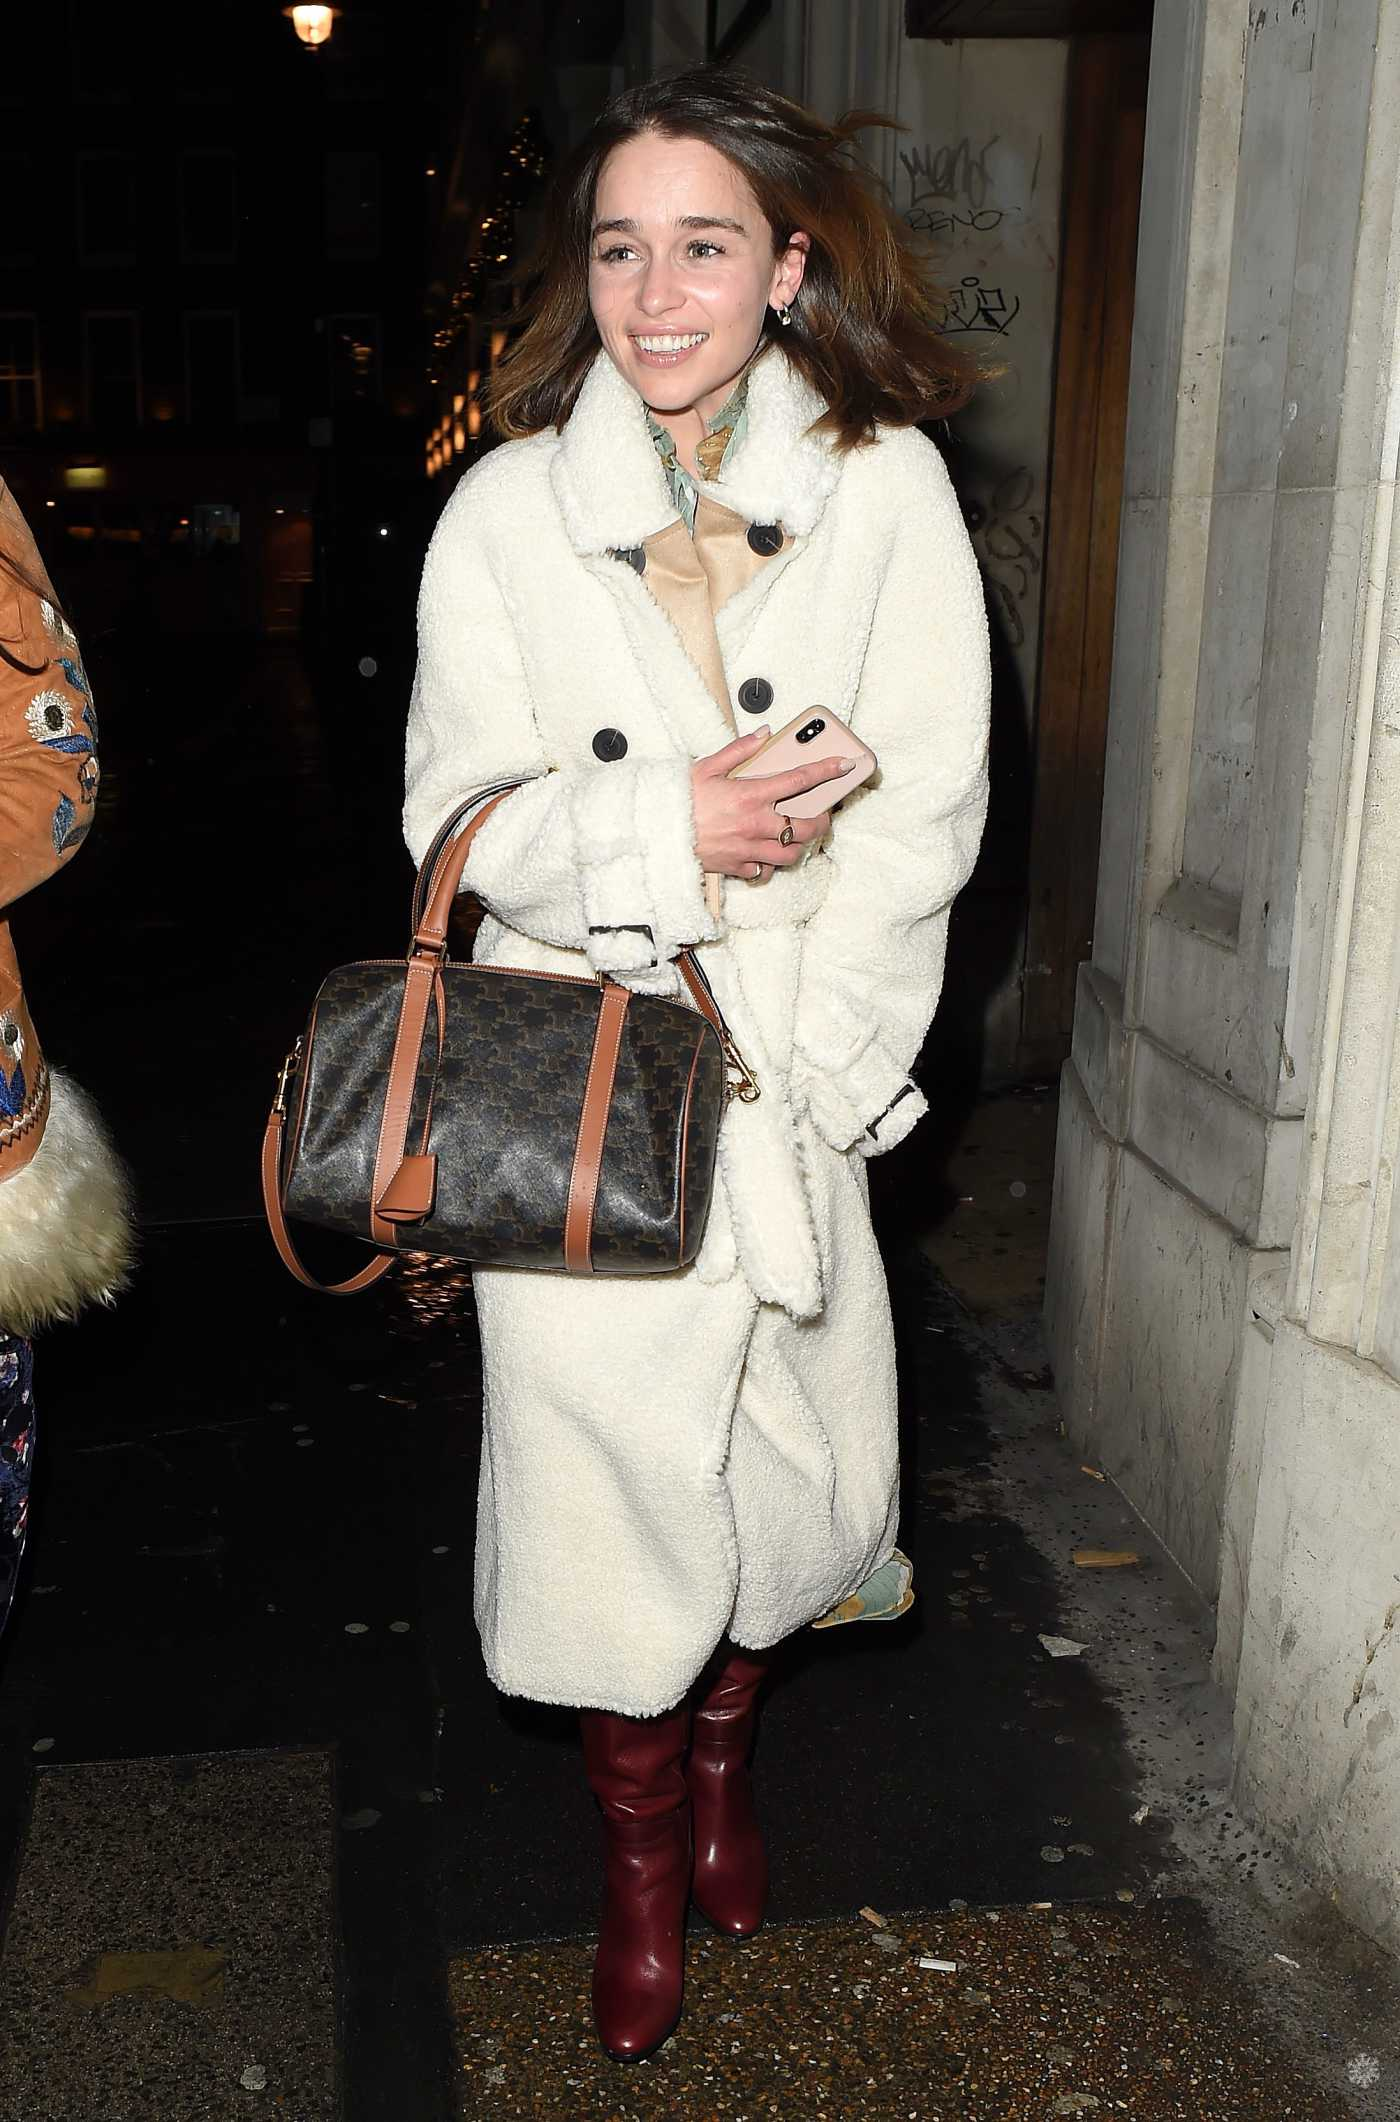 Emilia Clarke in a White Fur Coat Leaves a Restaurant with a Friend in London 12/13/2019